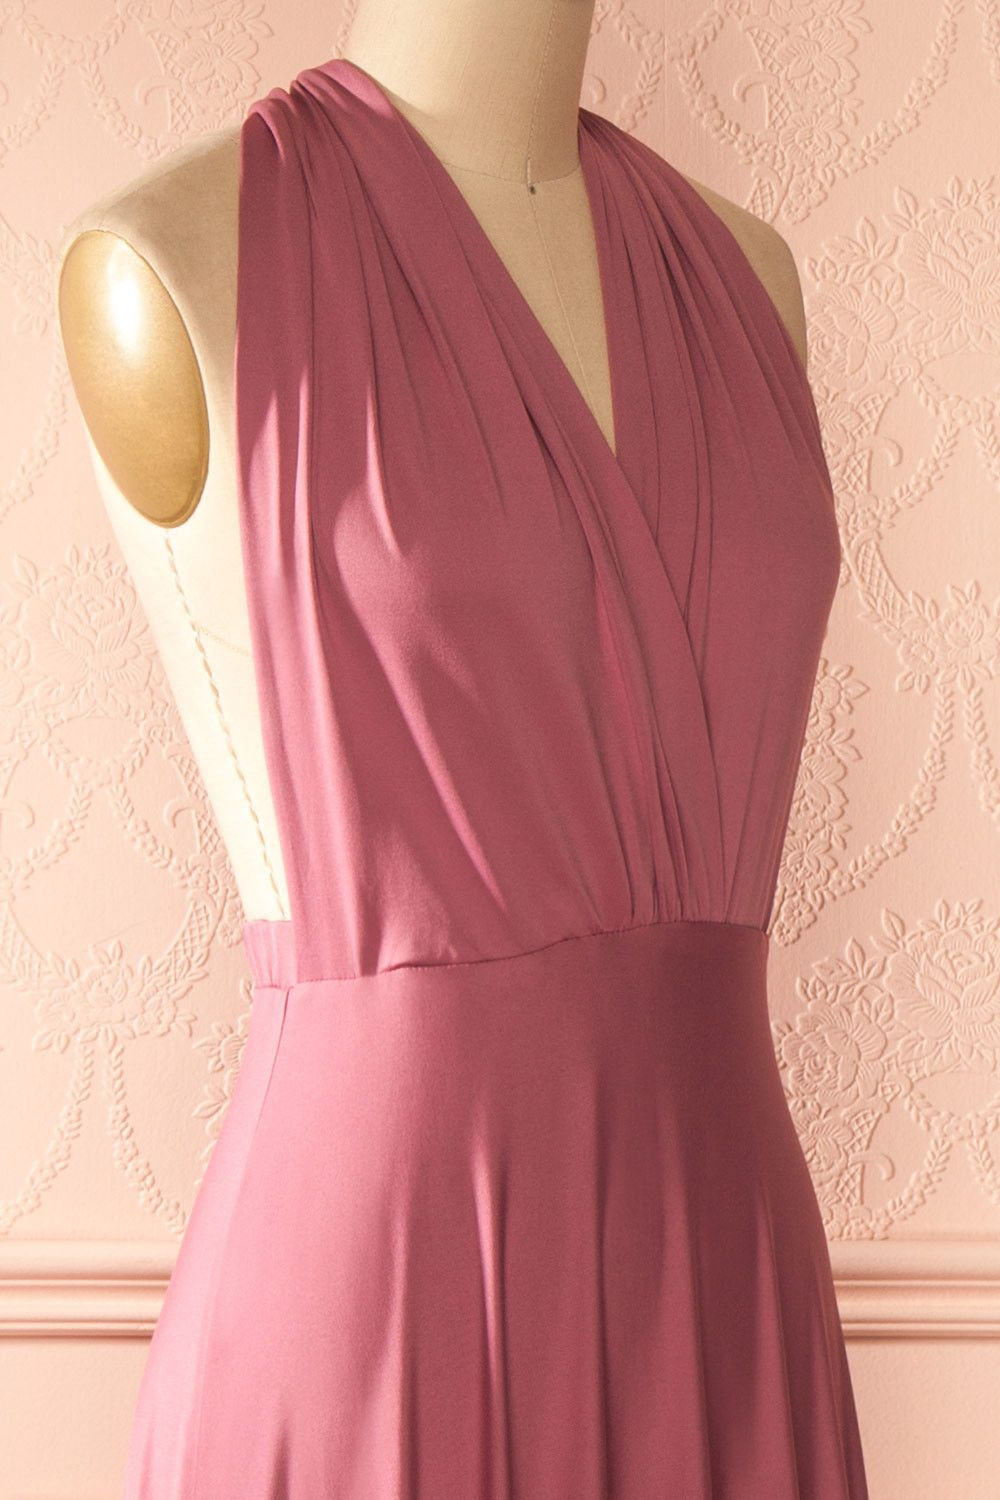 Elatia rose grand tour robe and dusty pink